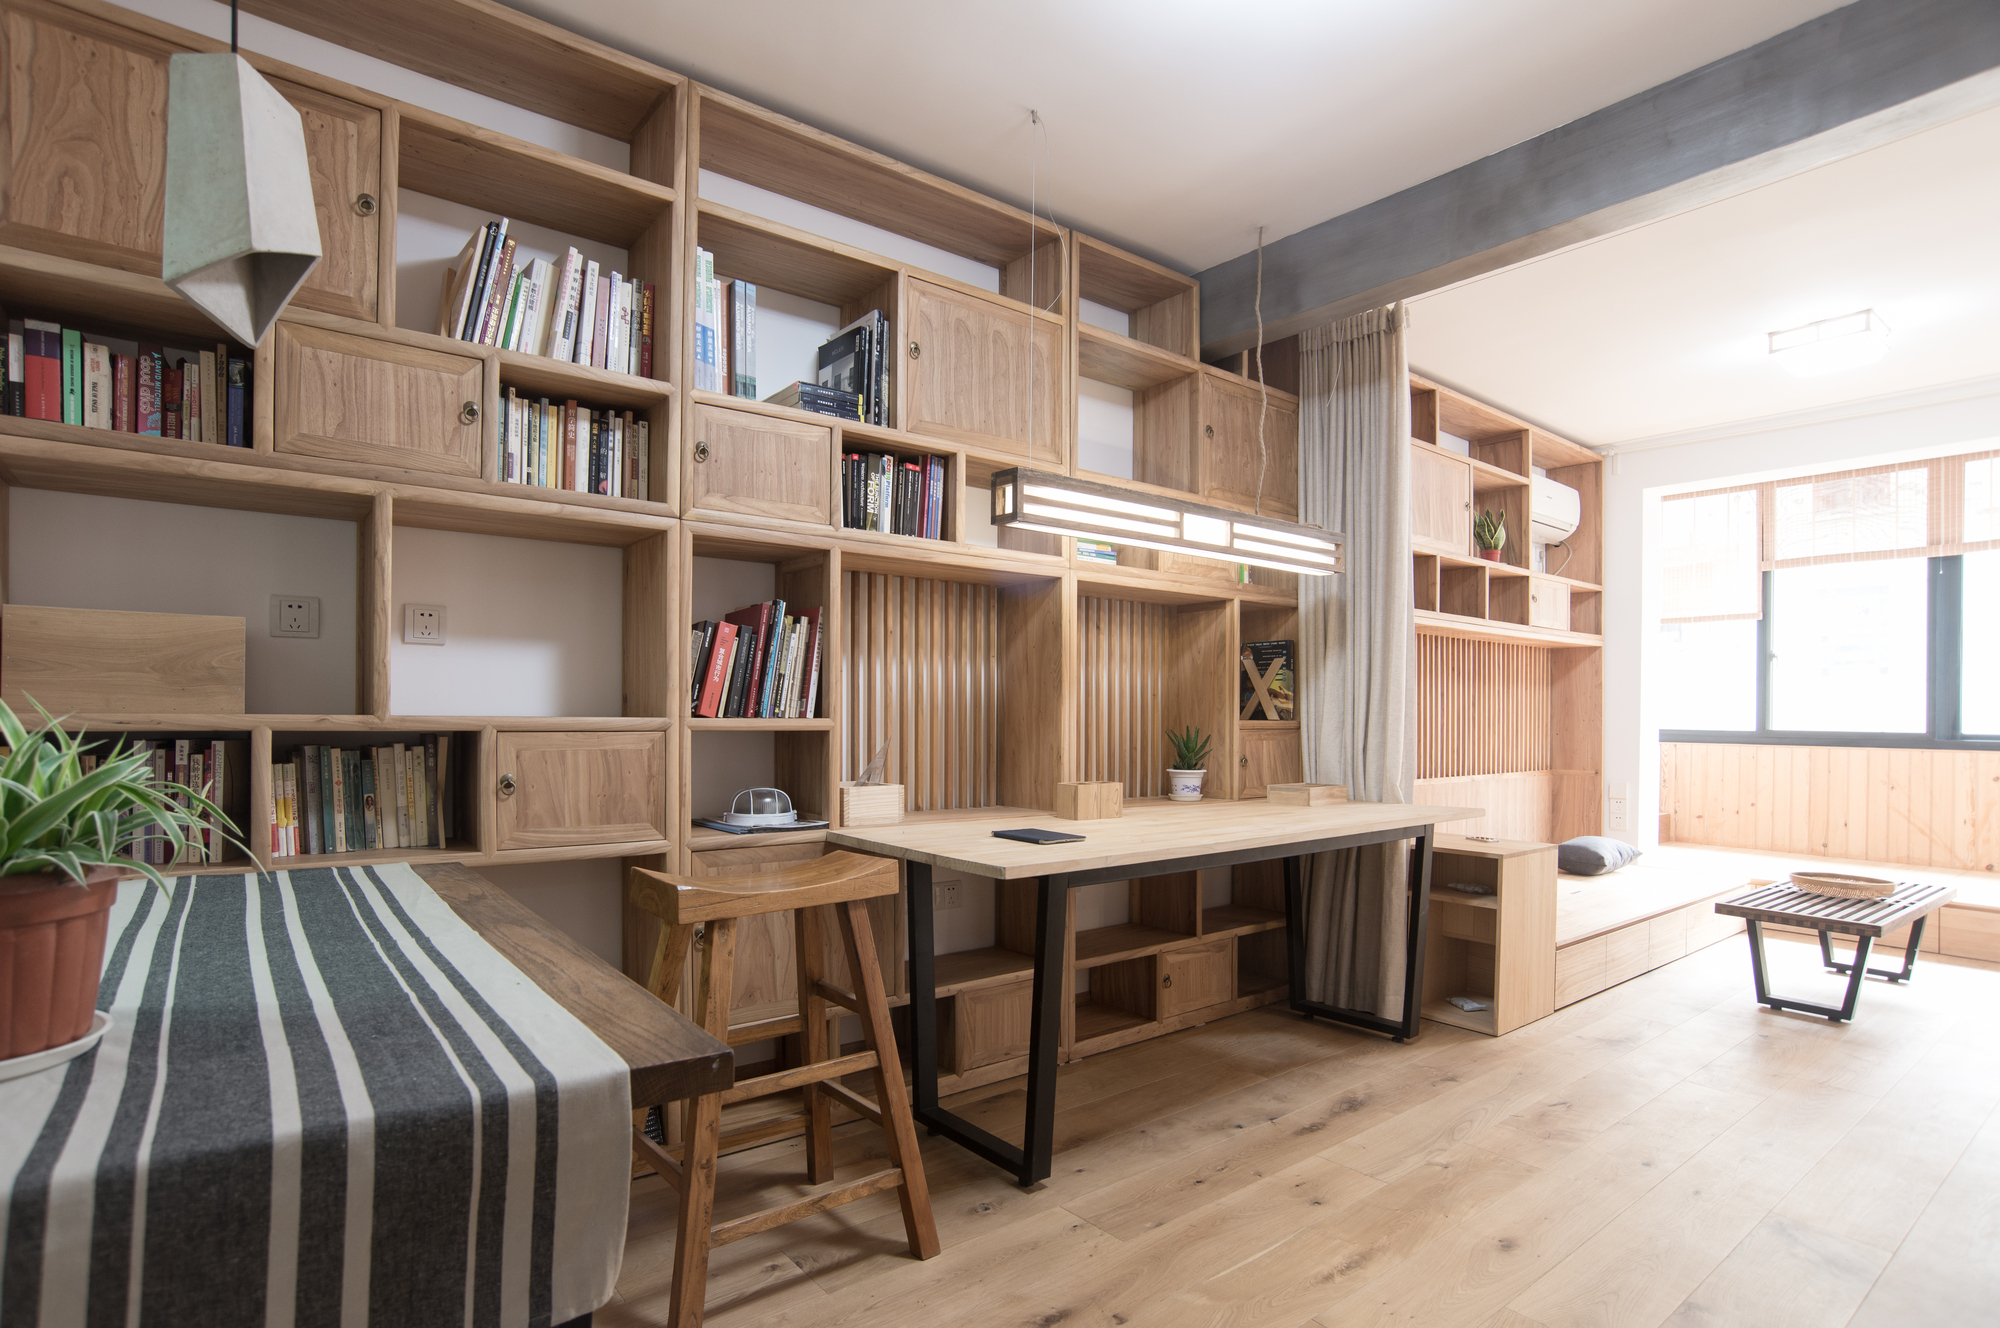 Gallery of A Traditional and Simple Chinese Home Design